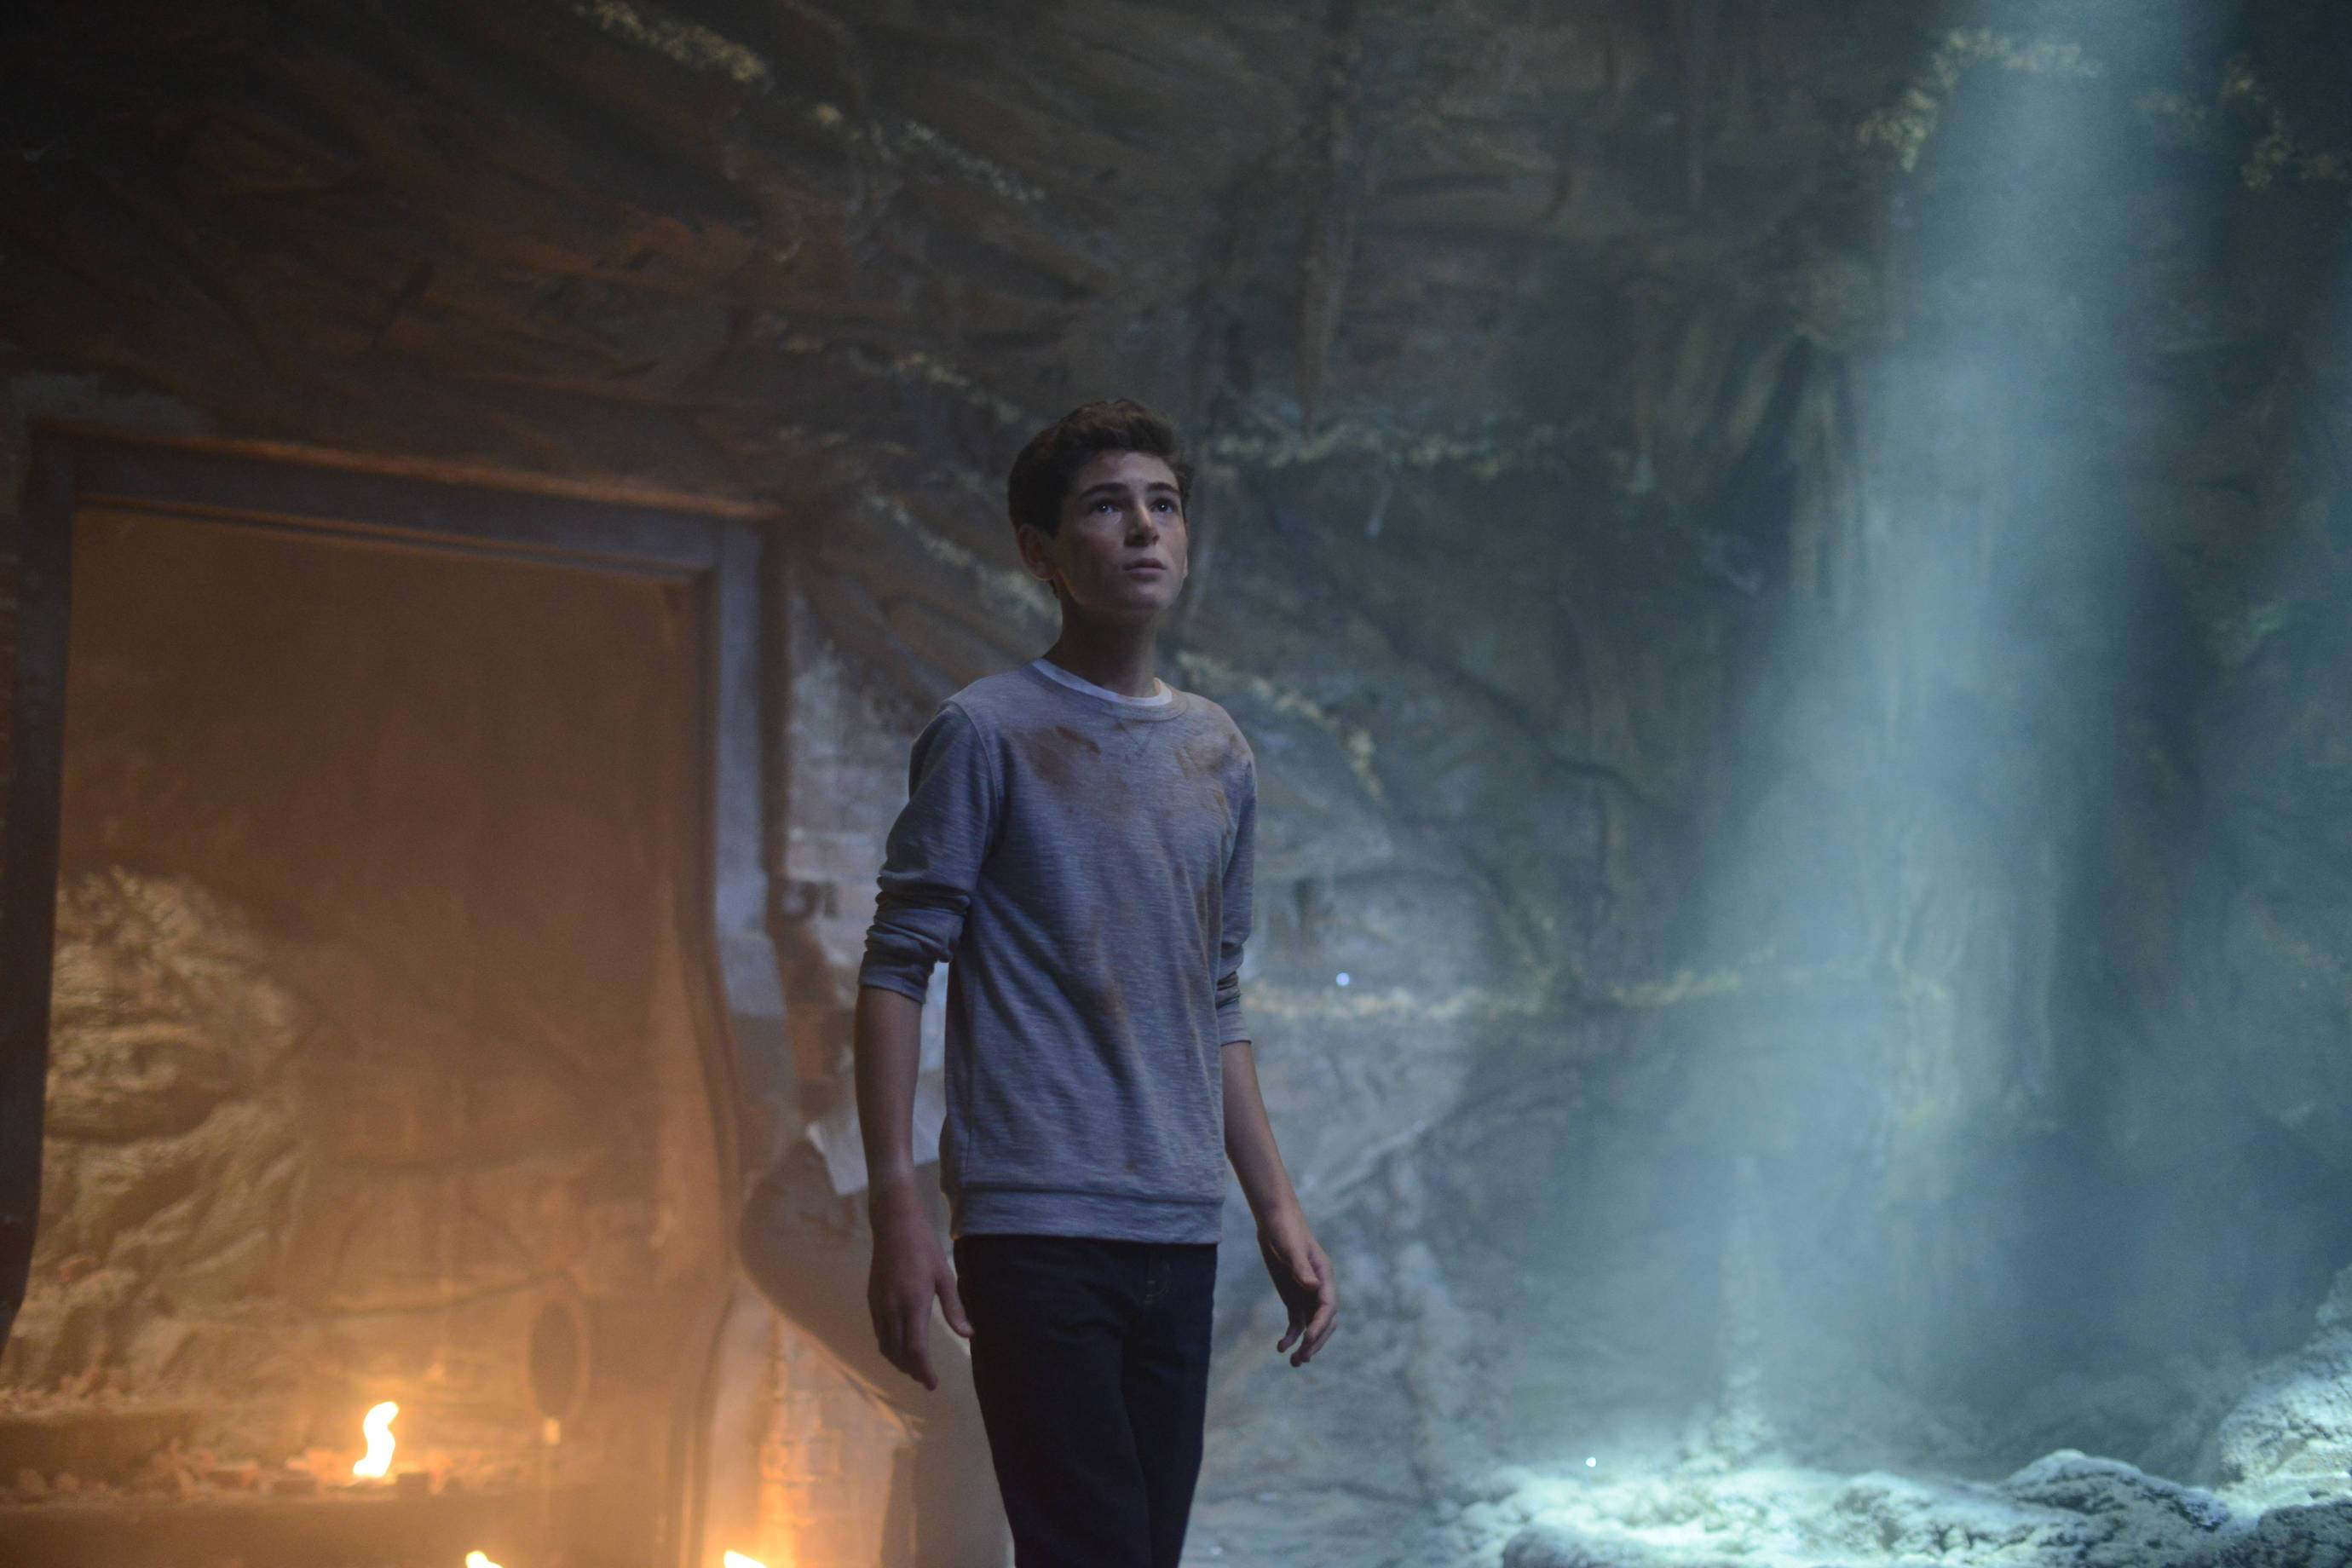 First Batch Of Stills From The Gotham Season 2 Premiere